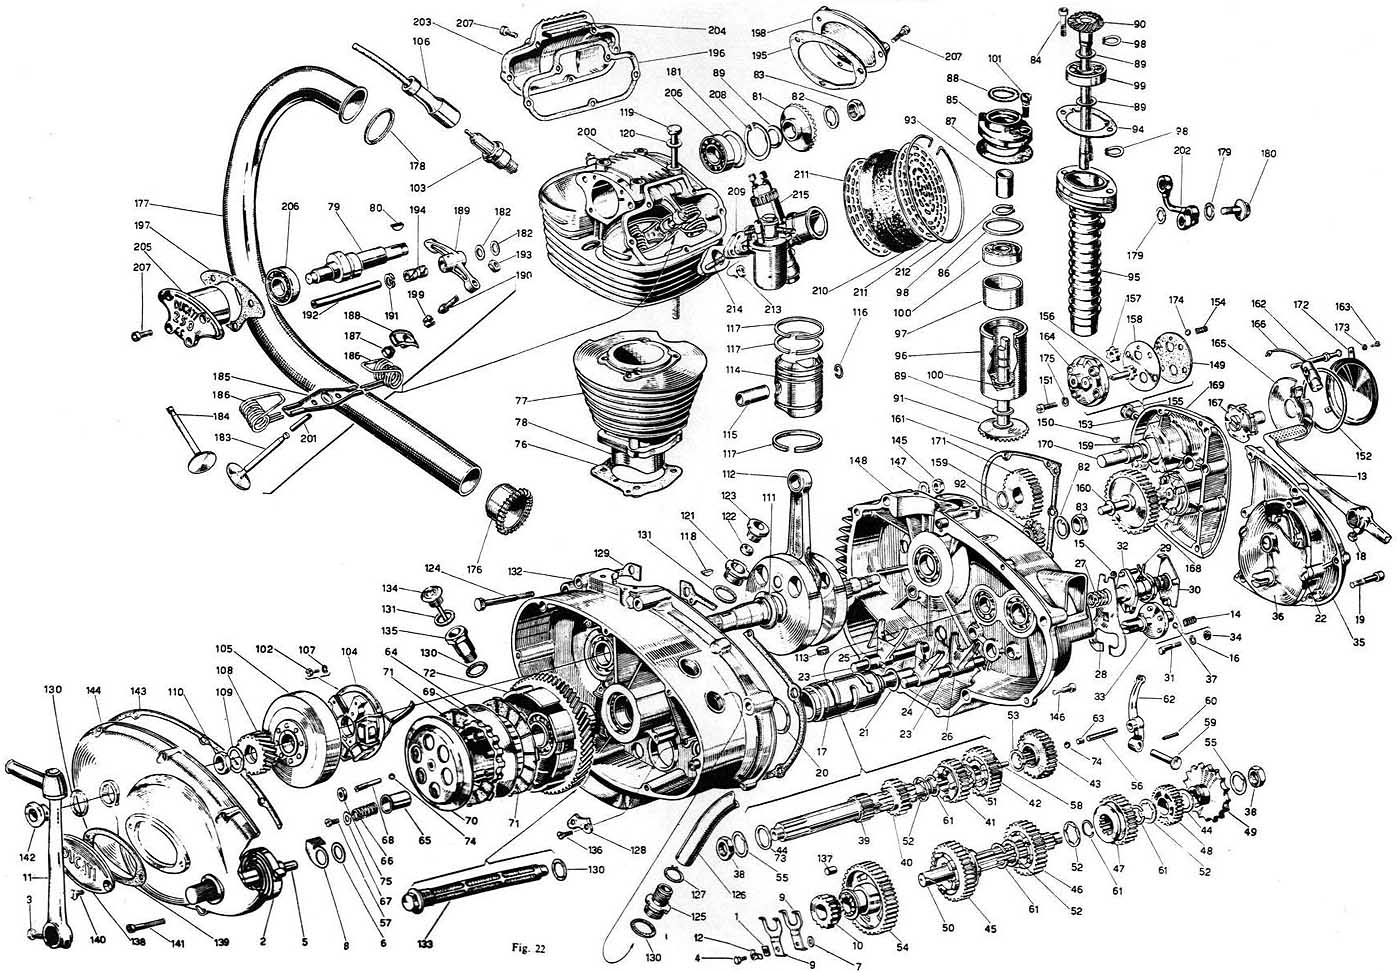 Old Motorcycle Engine Exploded Diagram : EnginePorn